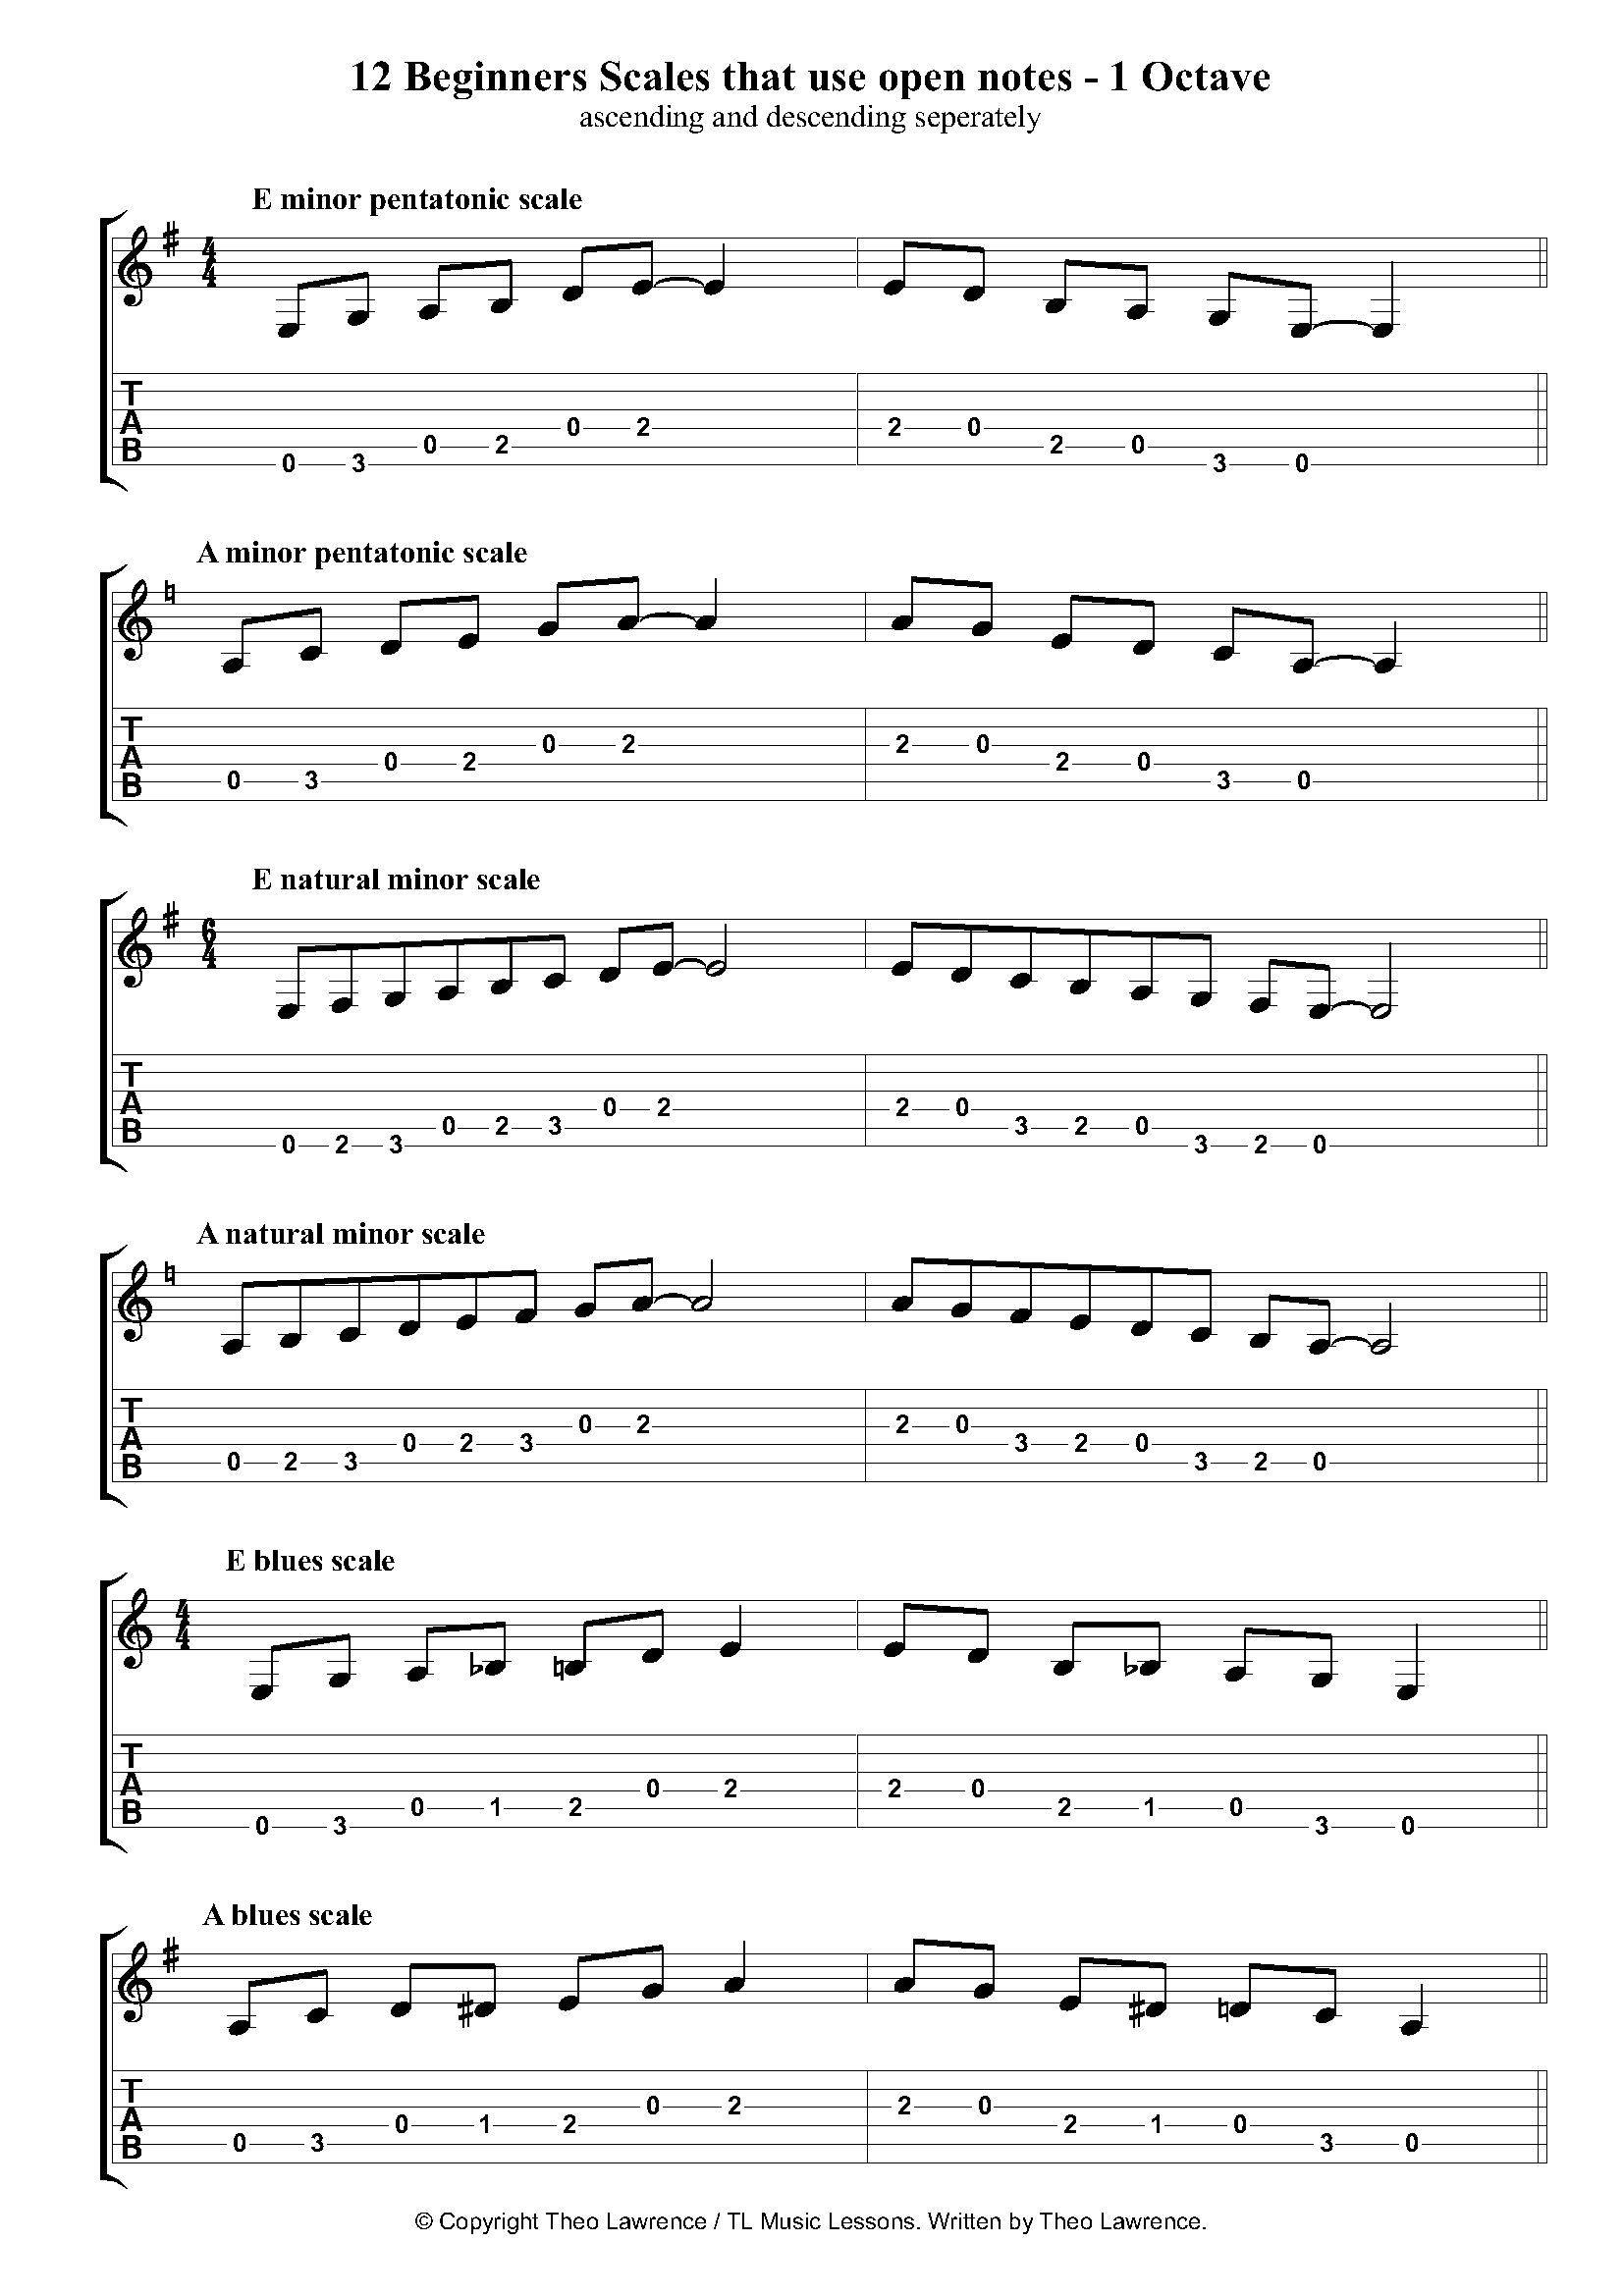 12 Beginners 1 Octave Open Scales - ascending and descending